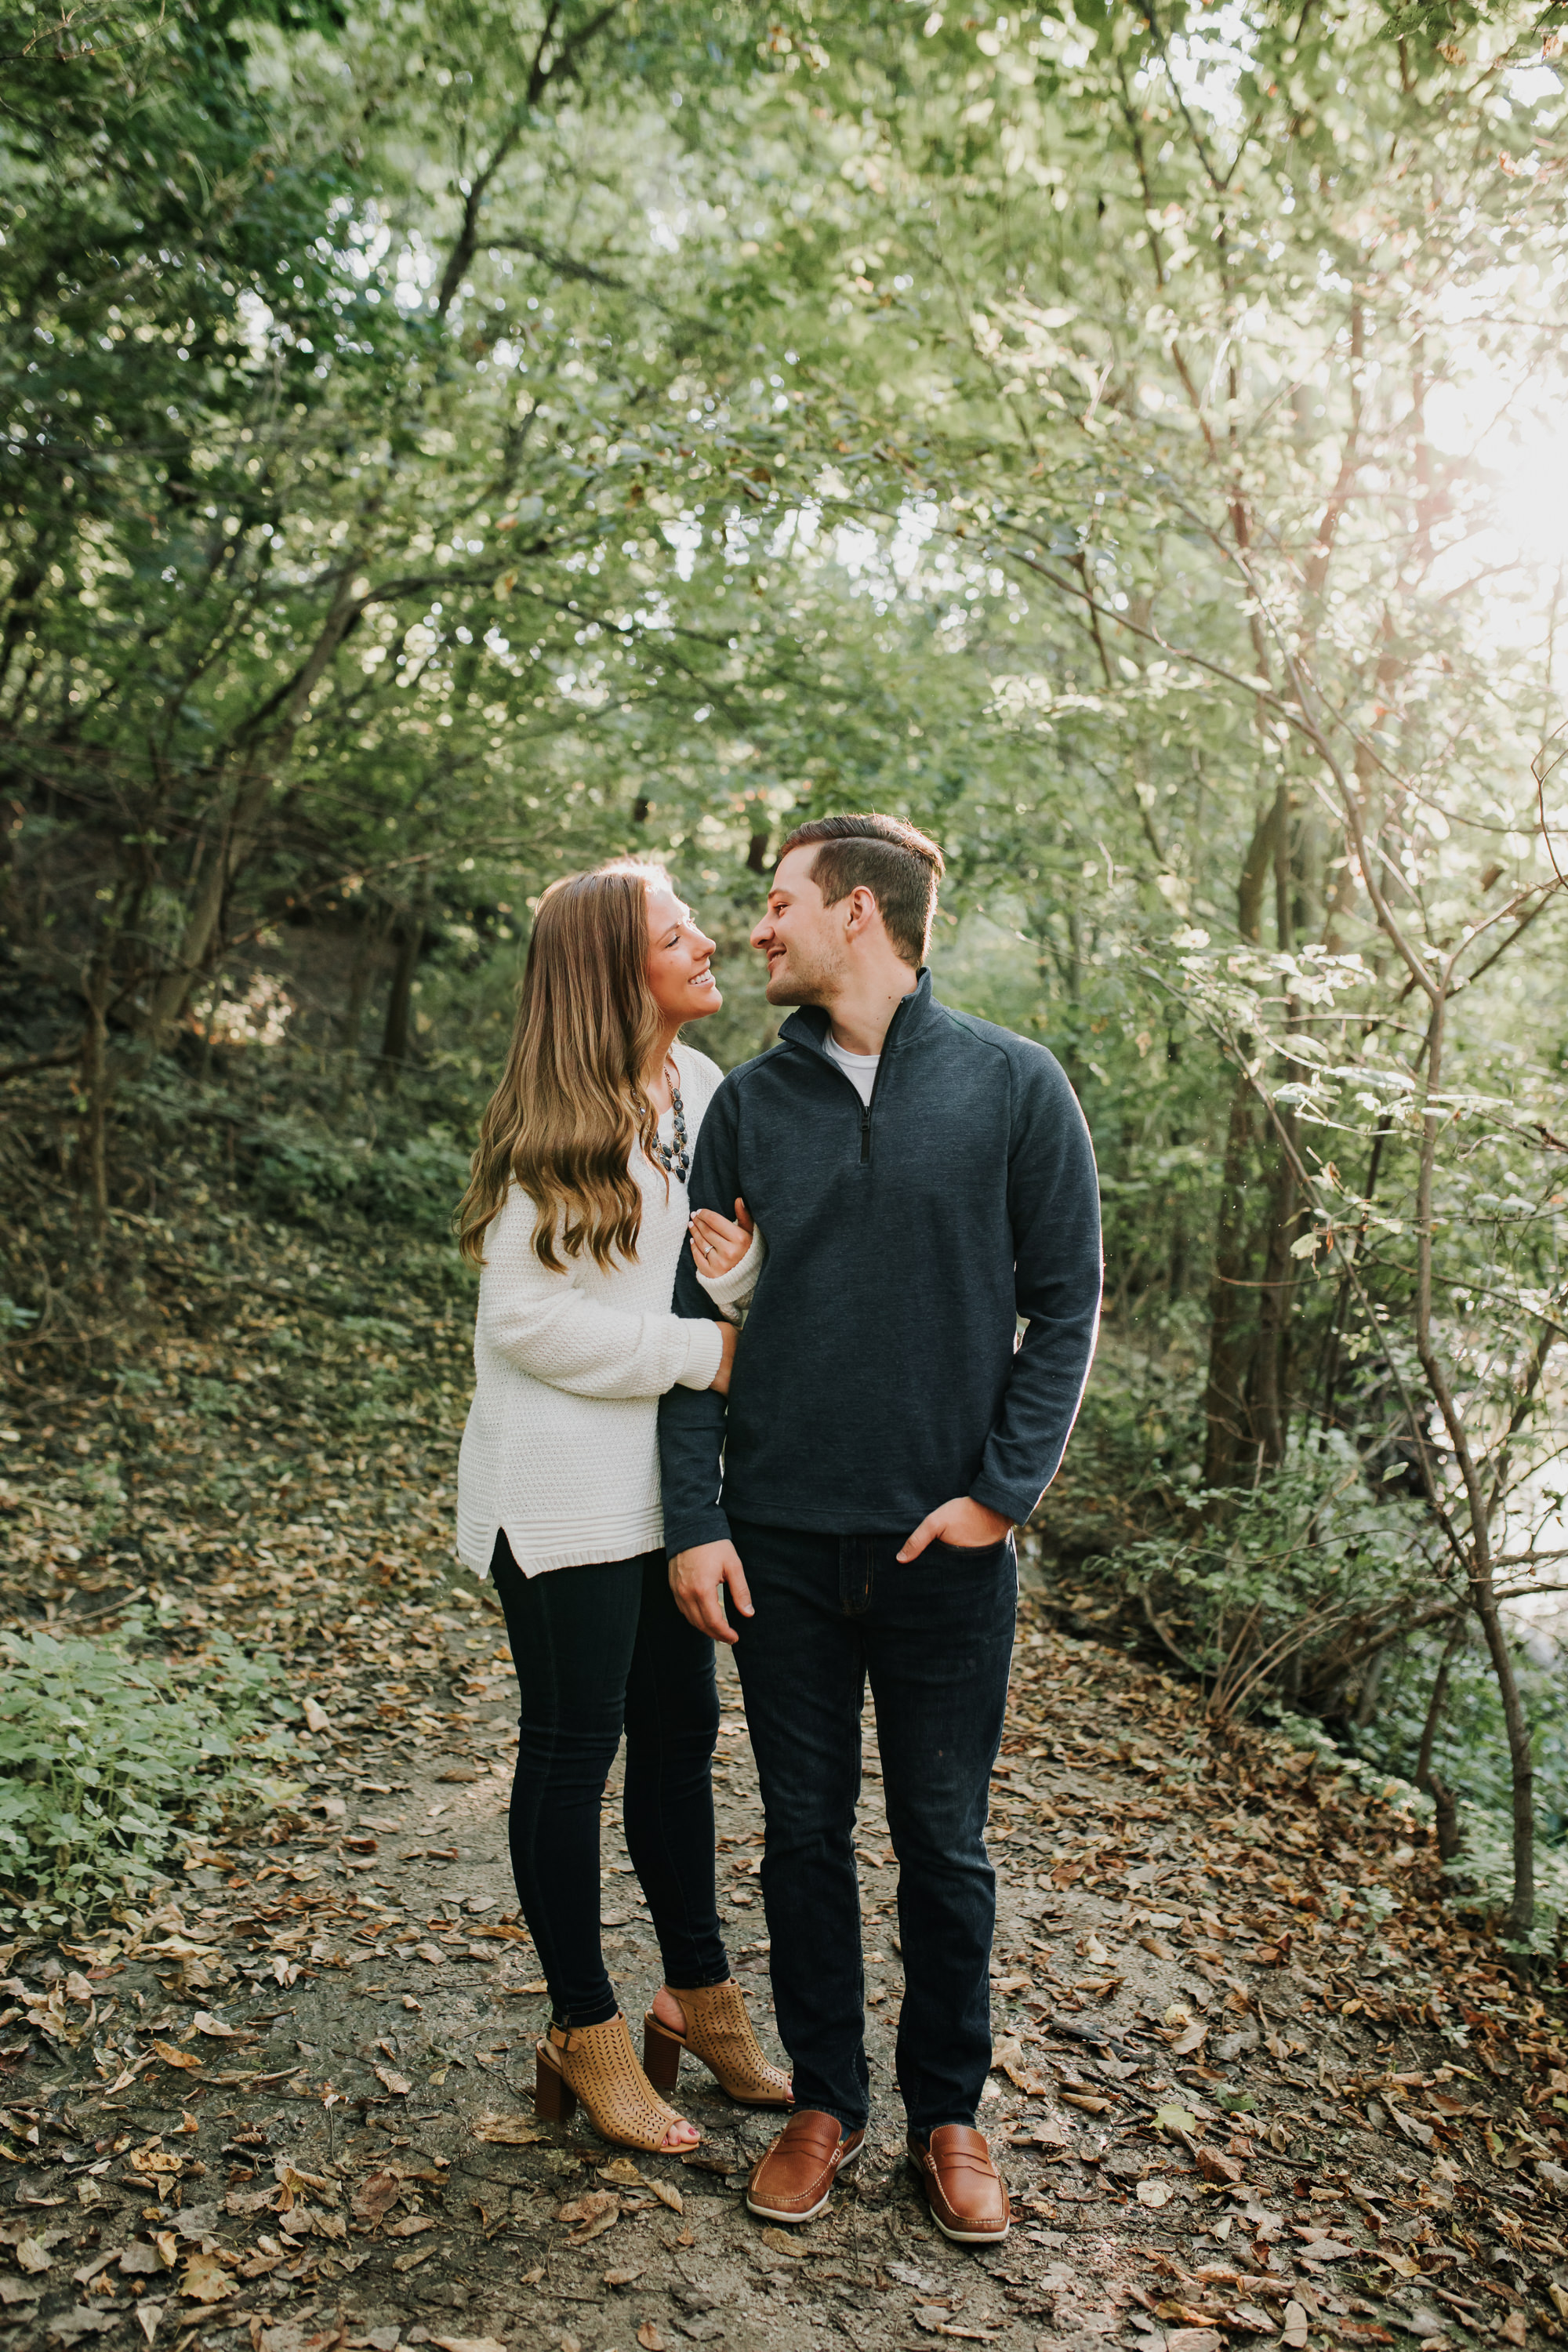 Michelle & Sam - Engaged - Nathaniel Jensen Photography - Omaha Nebraska Wedding Photograper - Omaha Nebraska Engagement Session-24.jpg